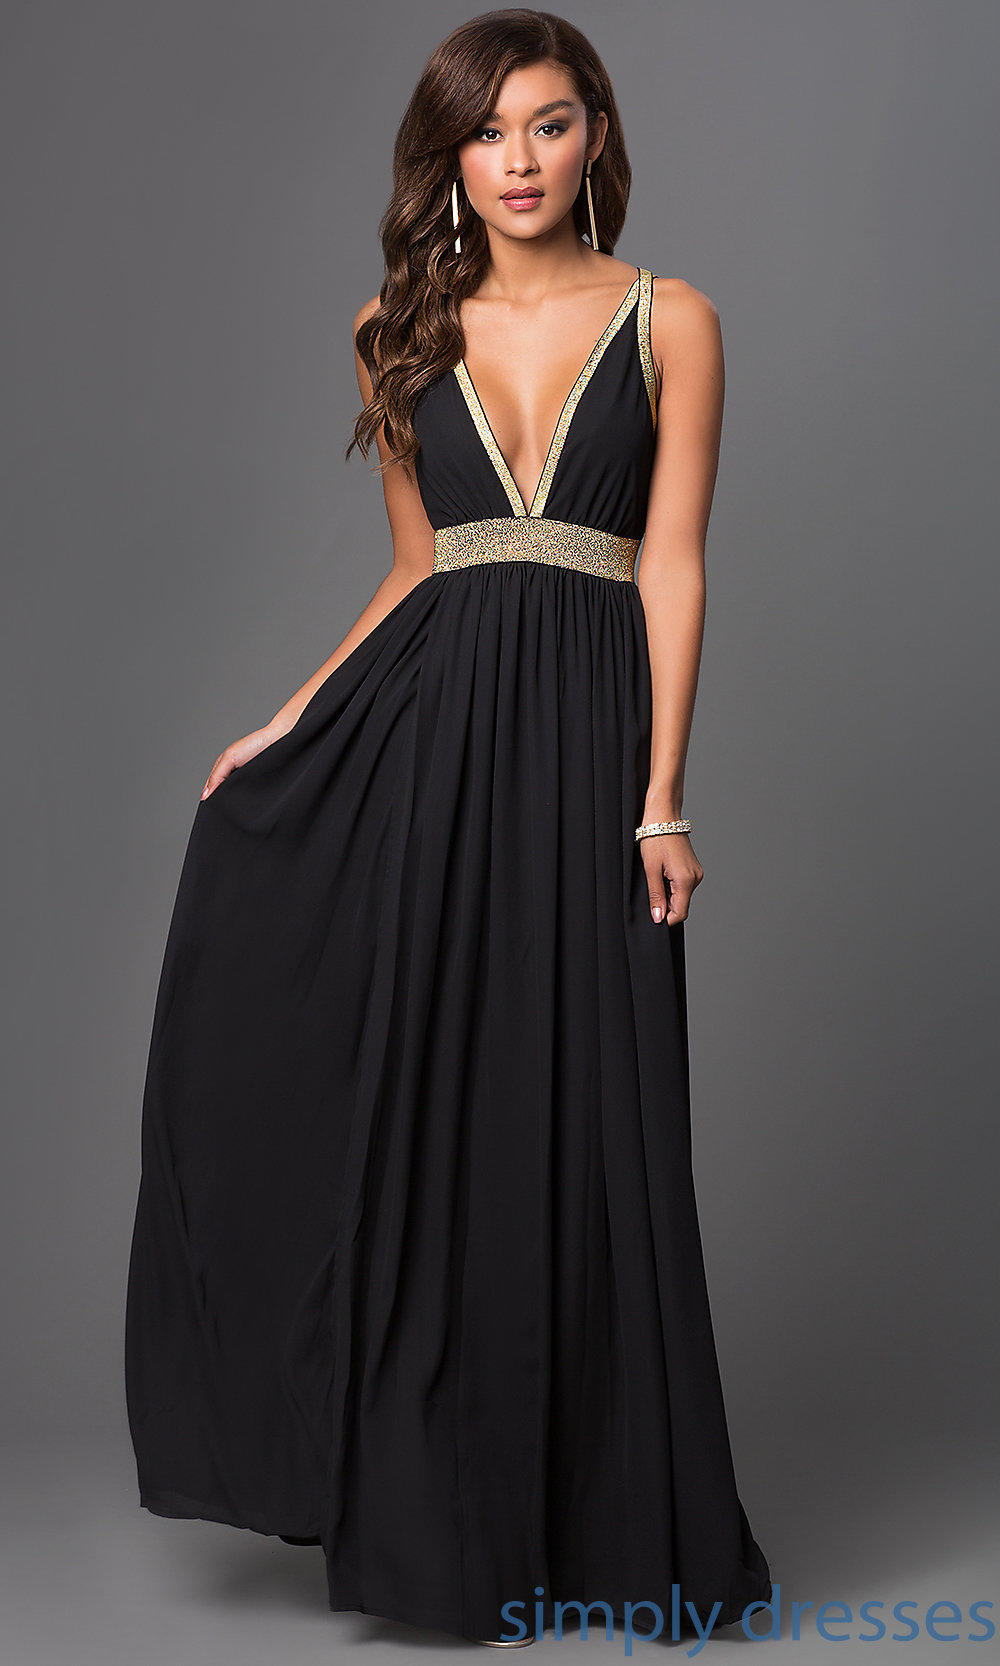 Dresses, Formal, Prom Dresses, Evening from Simply Dresses